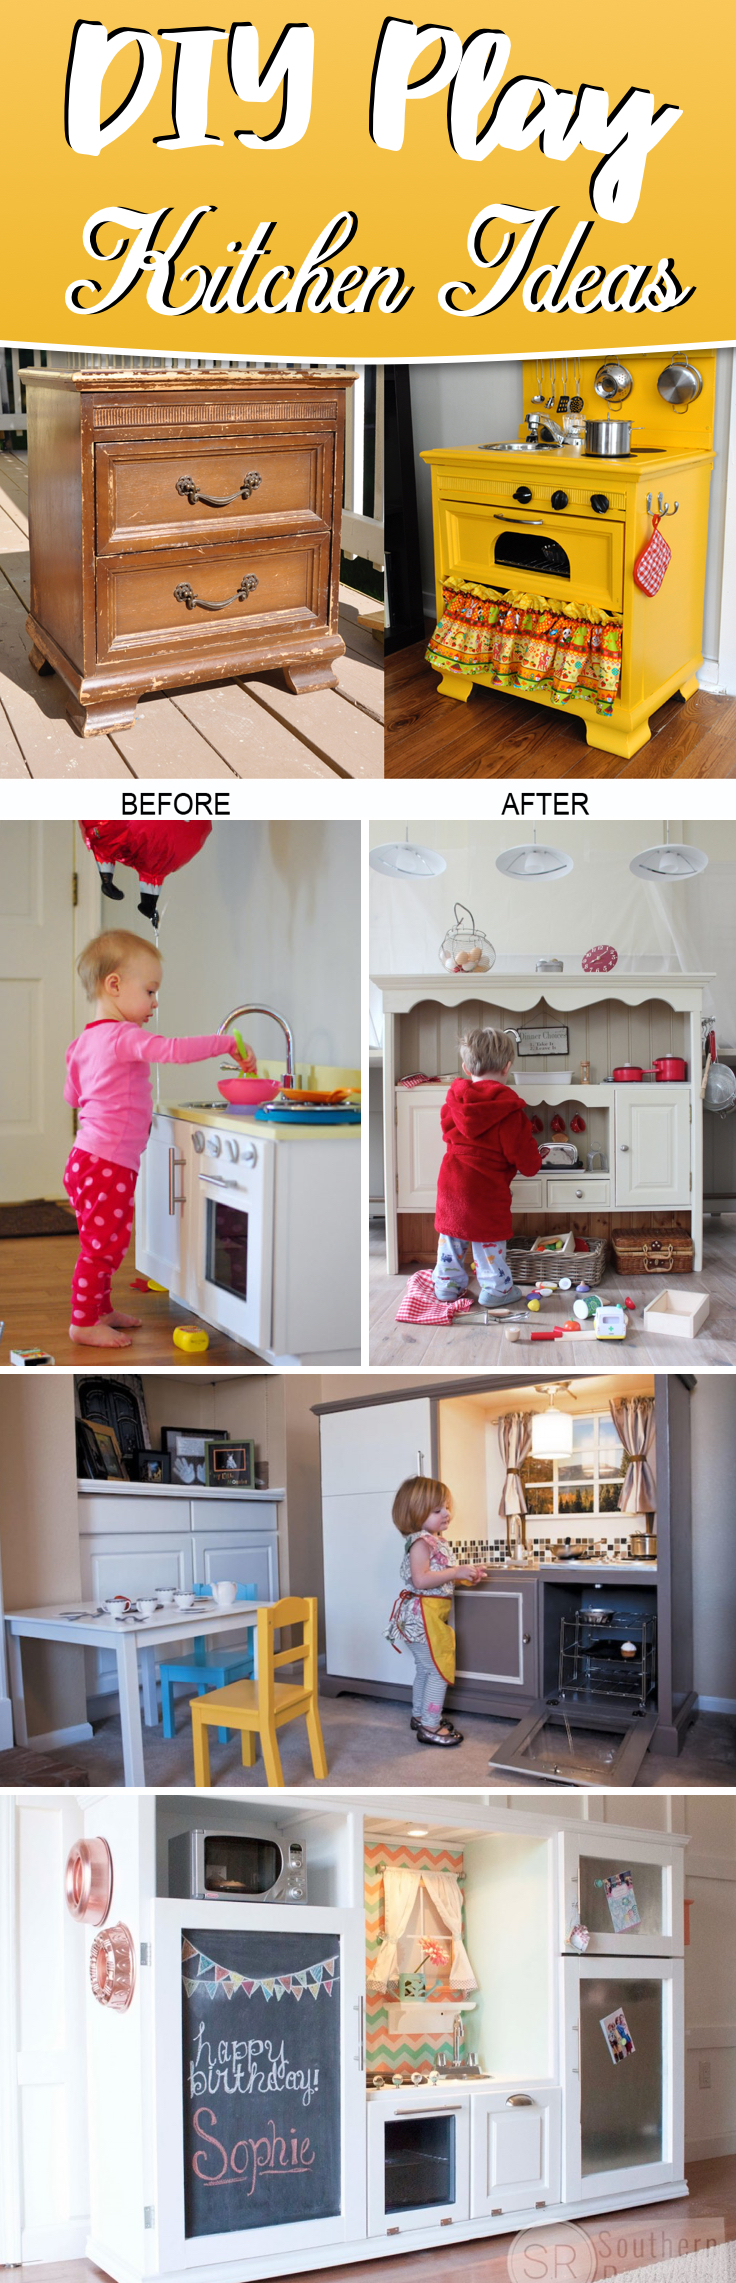 25 Diy Play Kitchen Ideas Apt And Appropriate For Your Little One S Personality